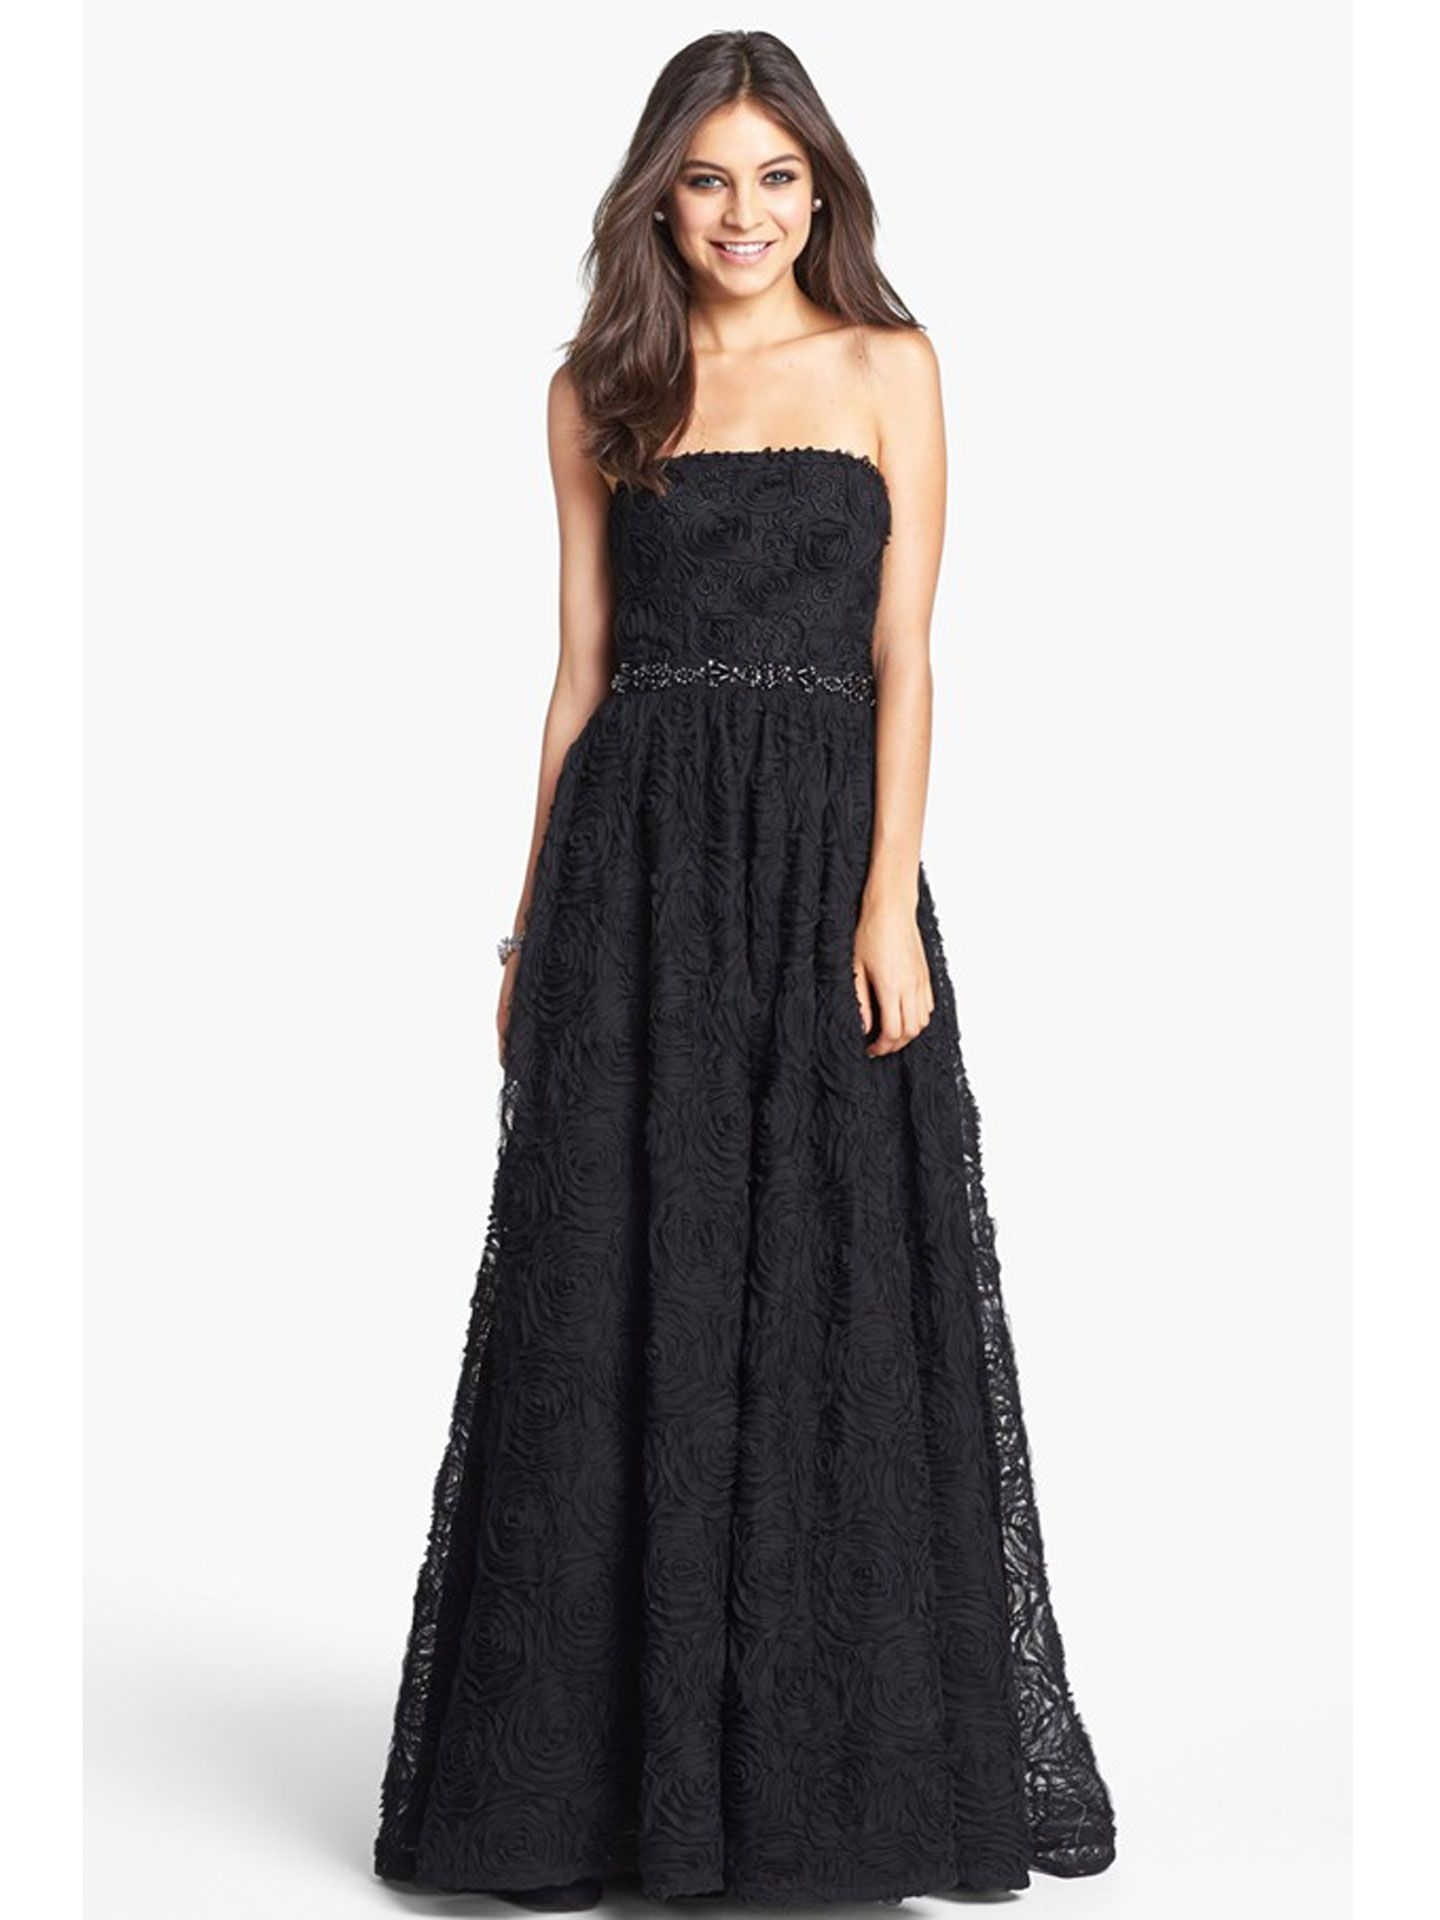 edgy black prom dresses guaranteed to make you stand out black